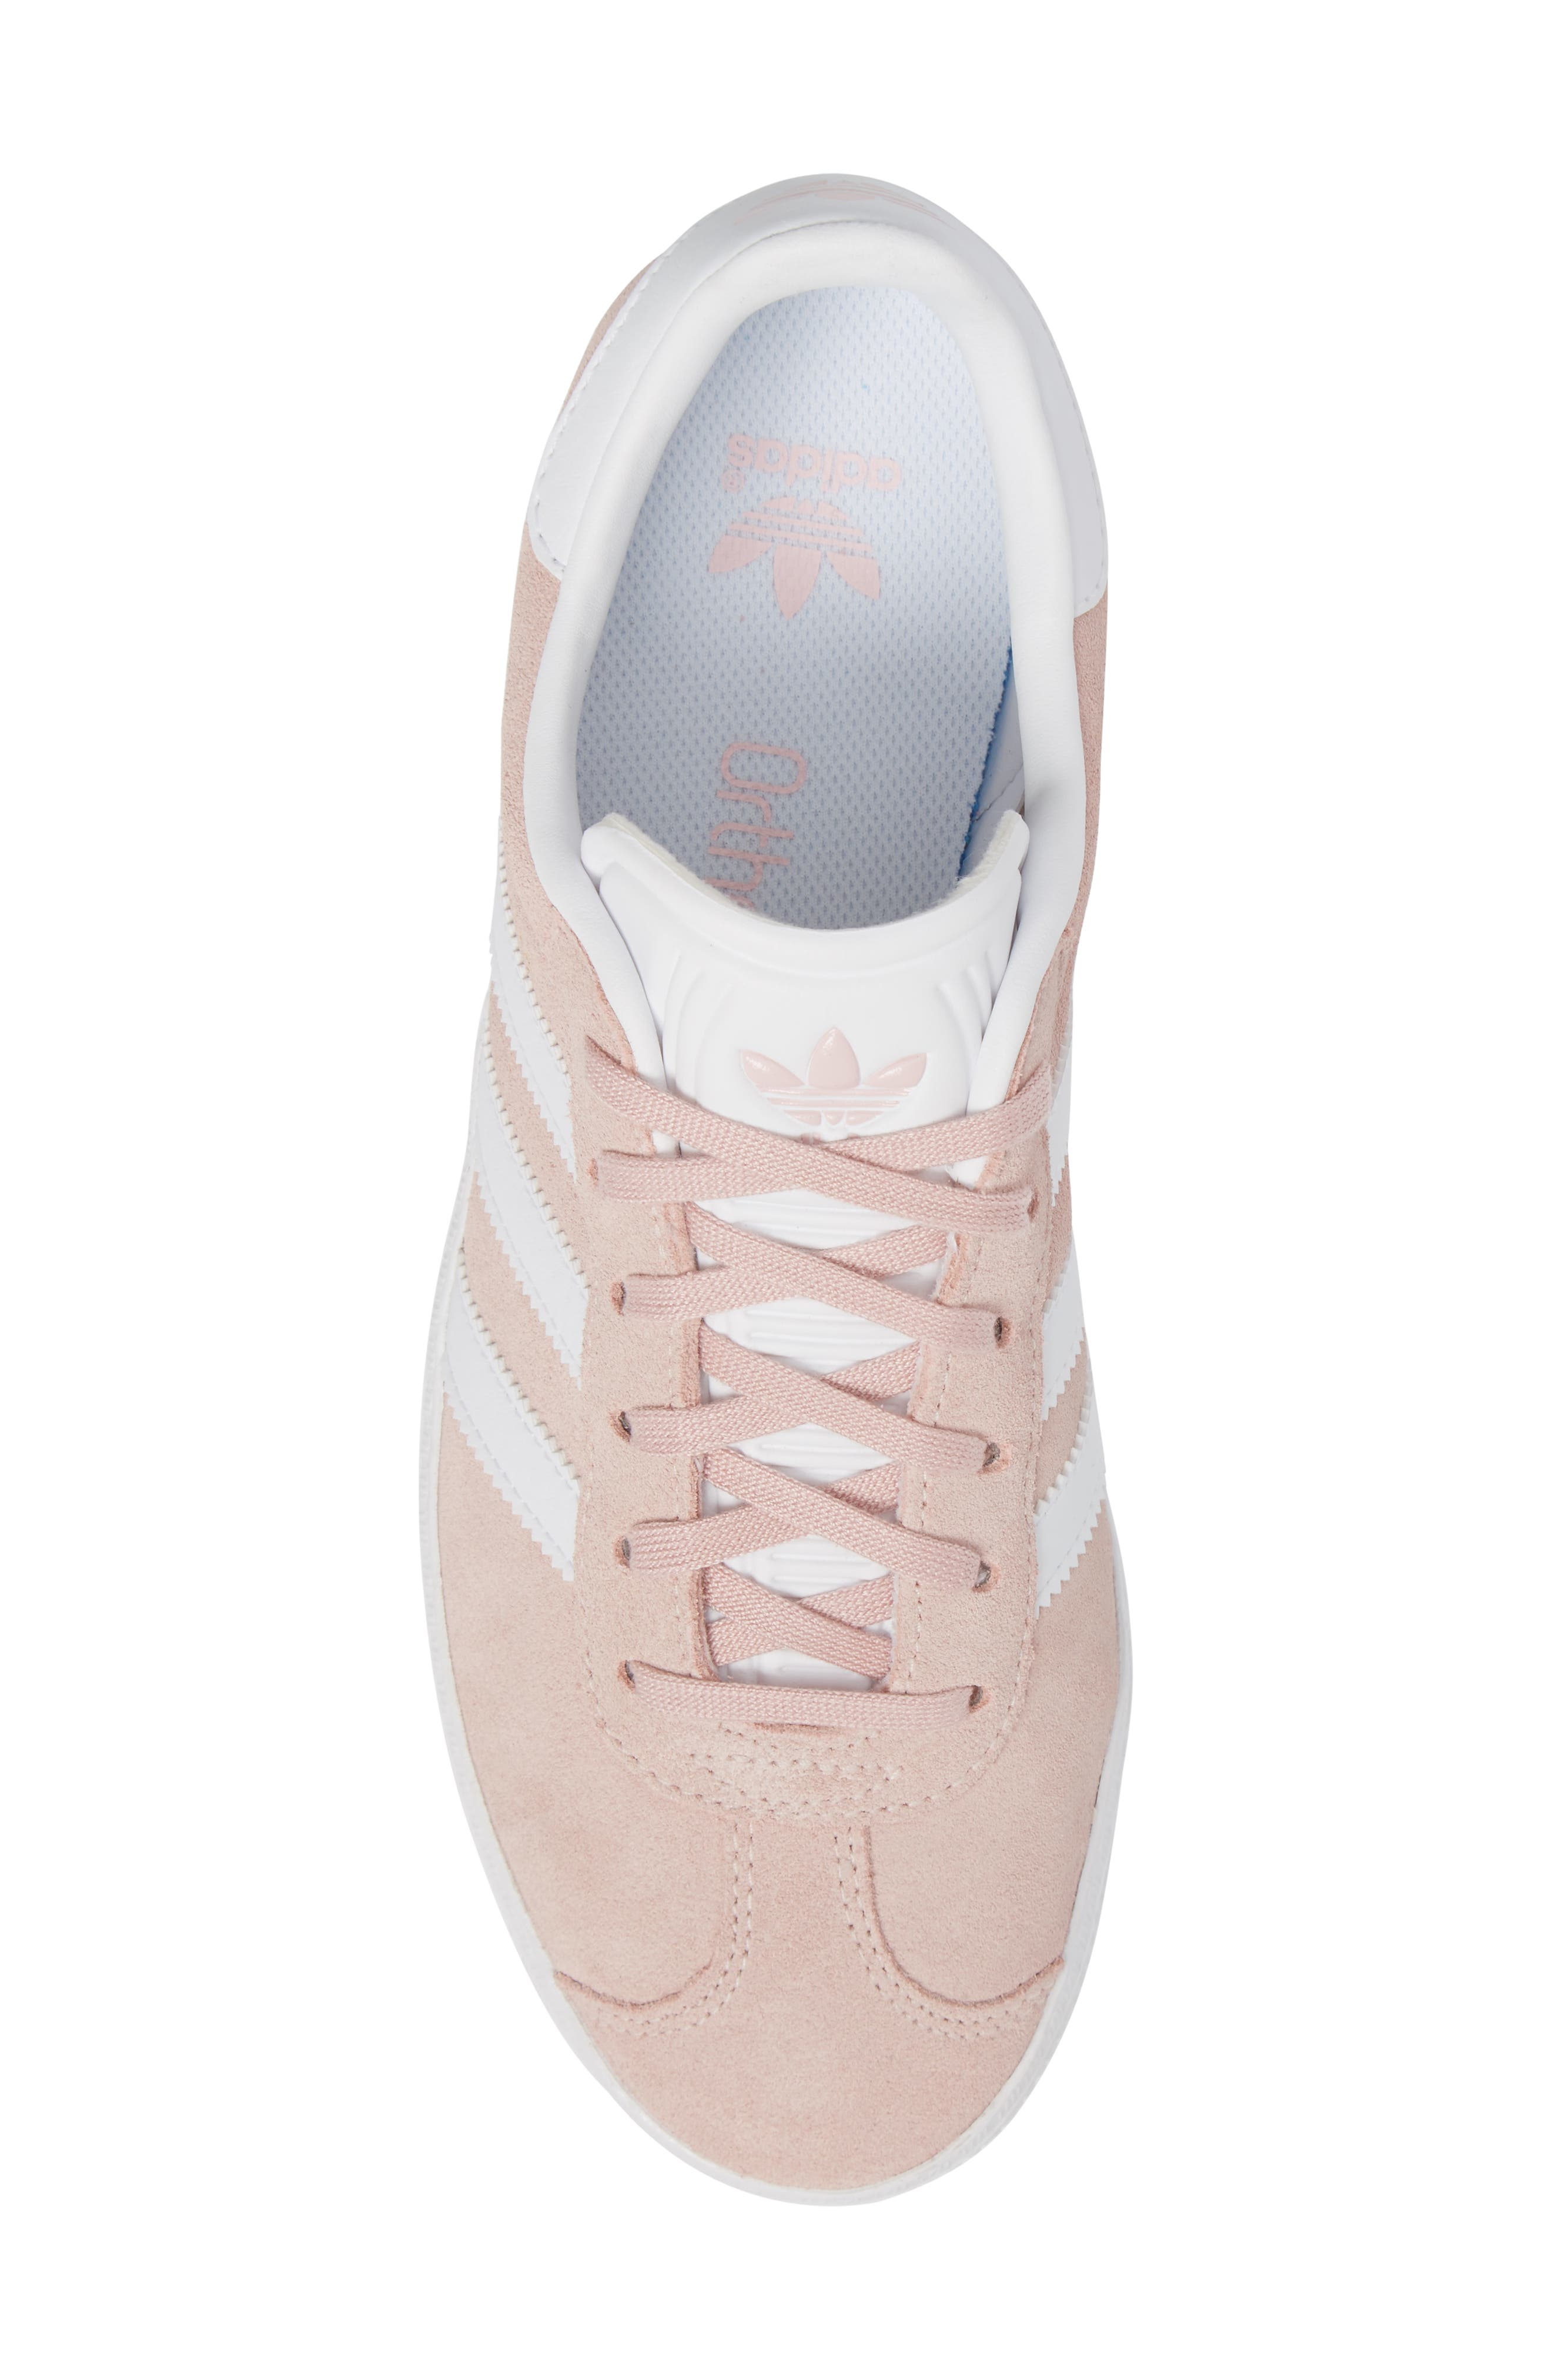 Gazelle Sneaker,                             Alternate thumbnail 5, color,                             Icy Pink/ White/ Gold